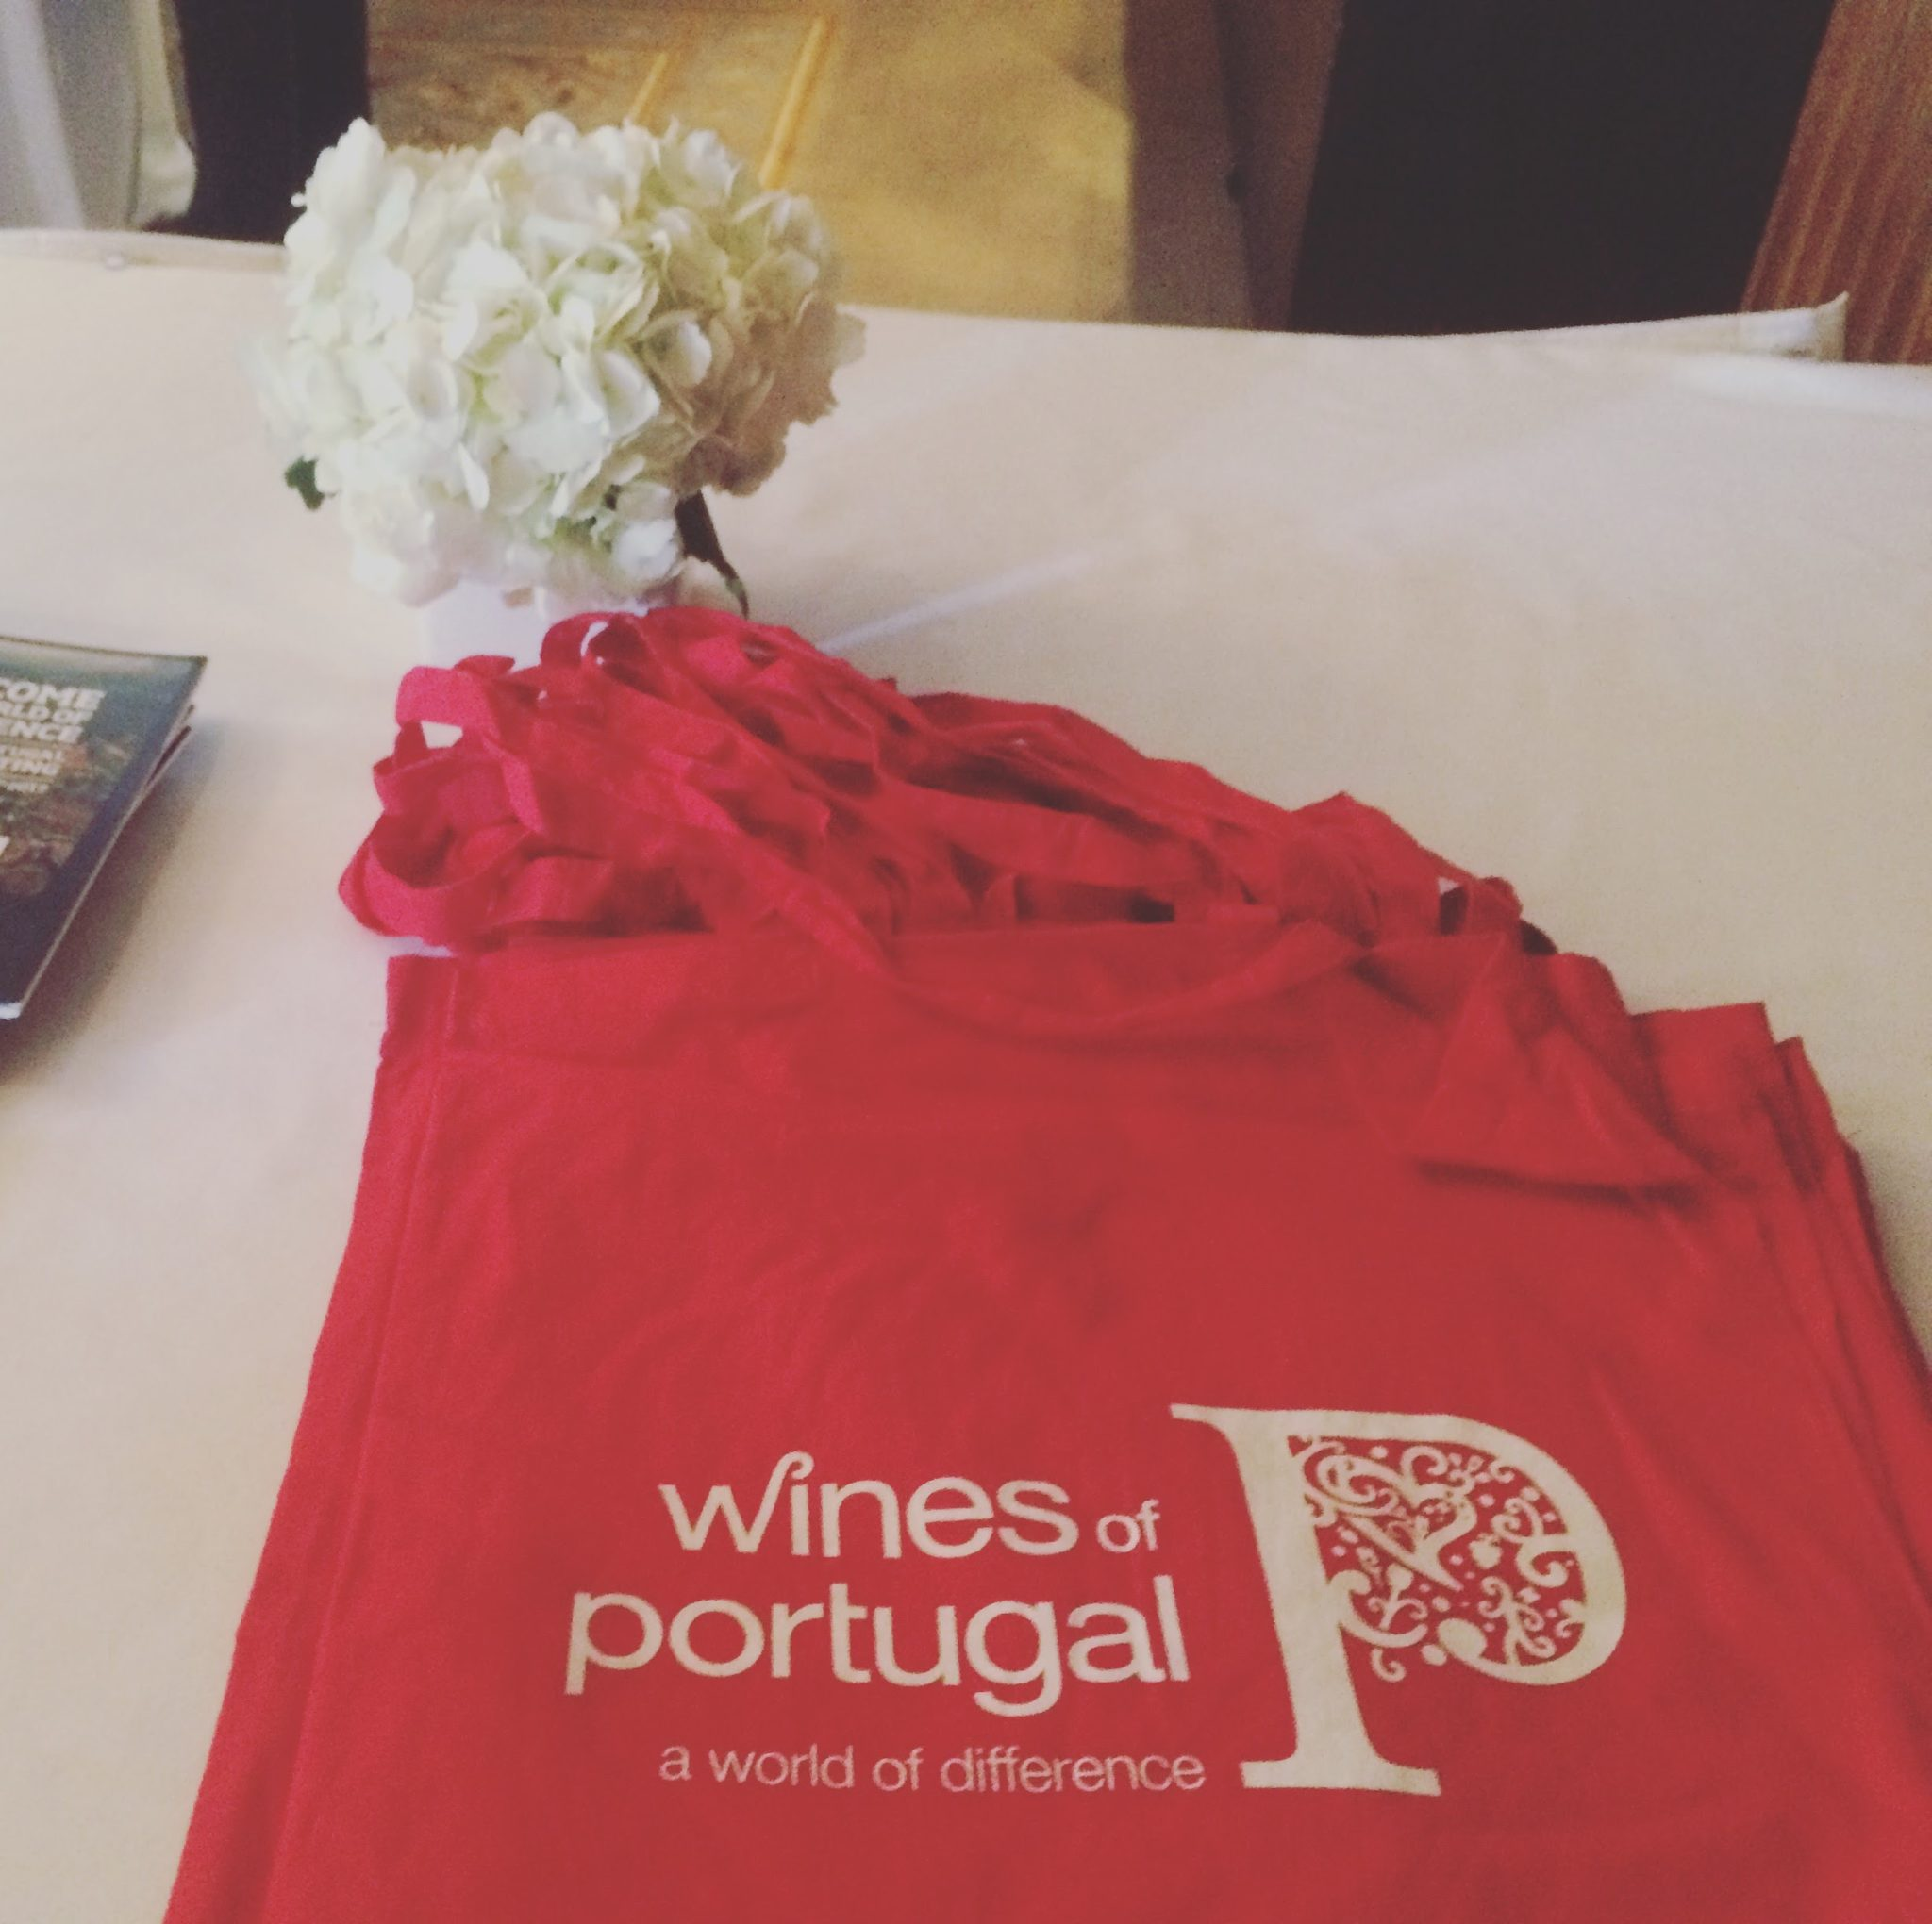 Wines of Portugal, Wine